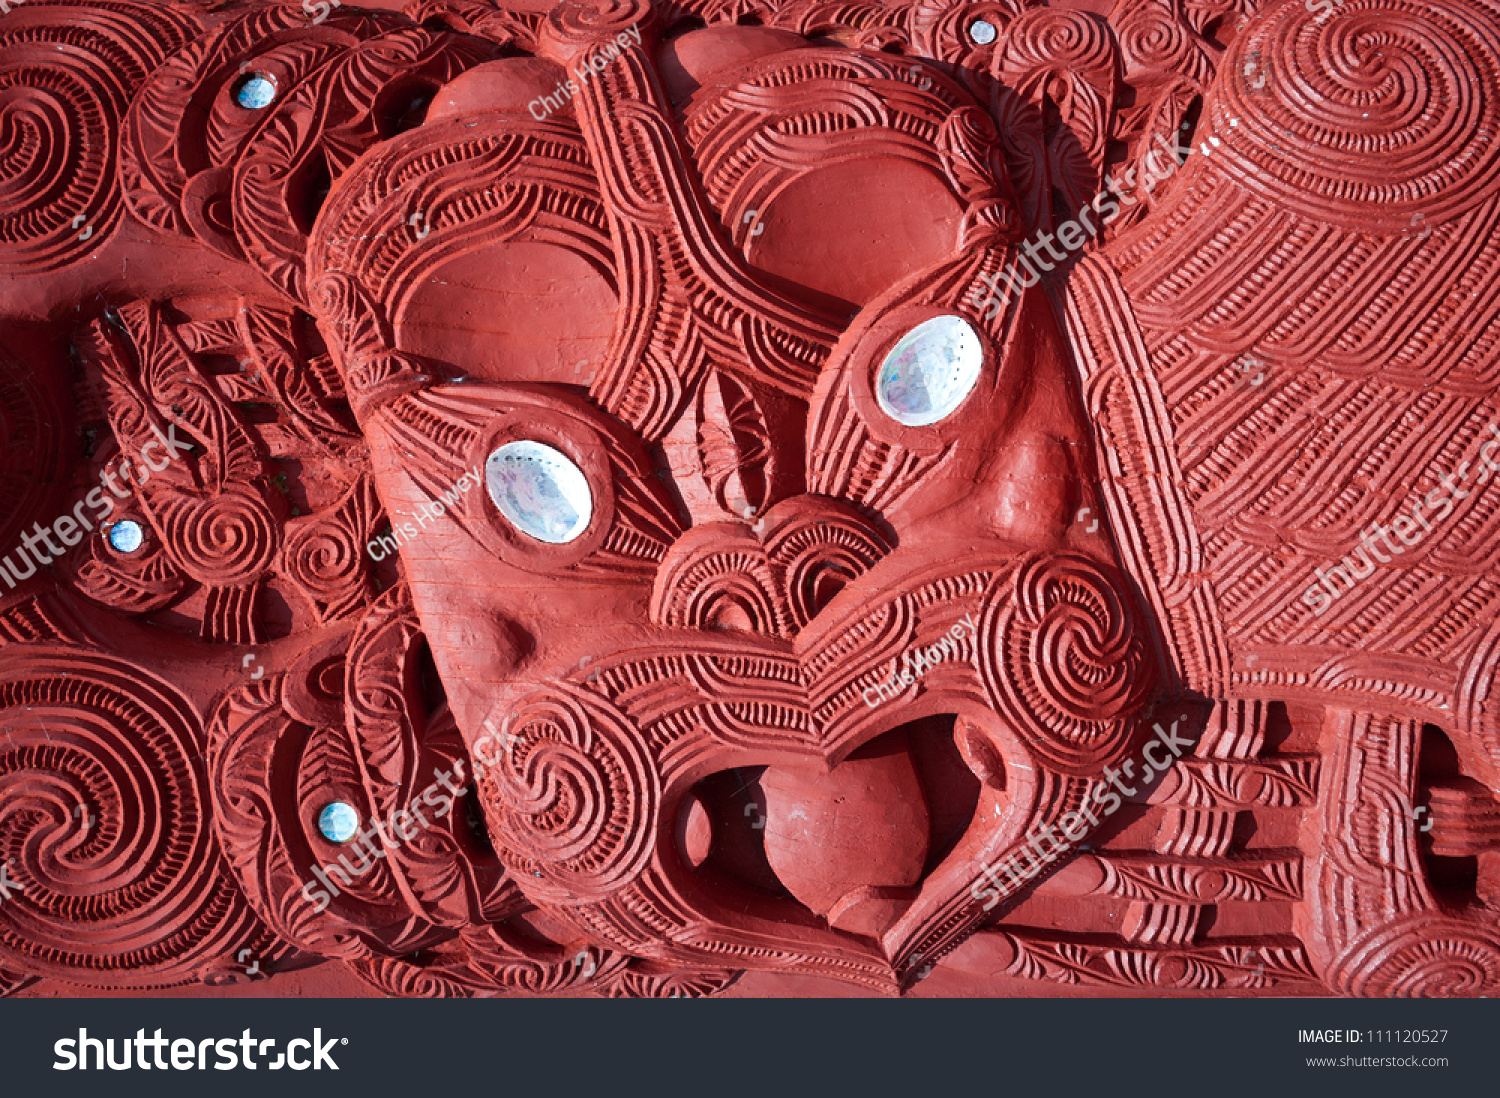 stock photo this image shows a maori carving rotorua new zealand